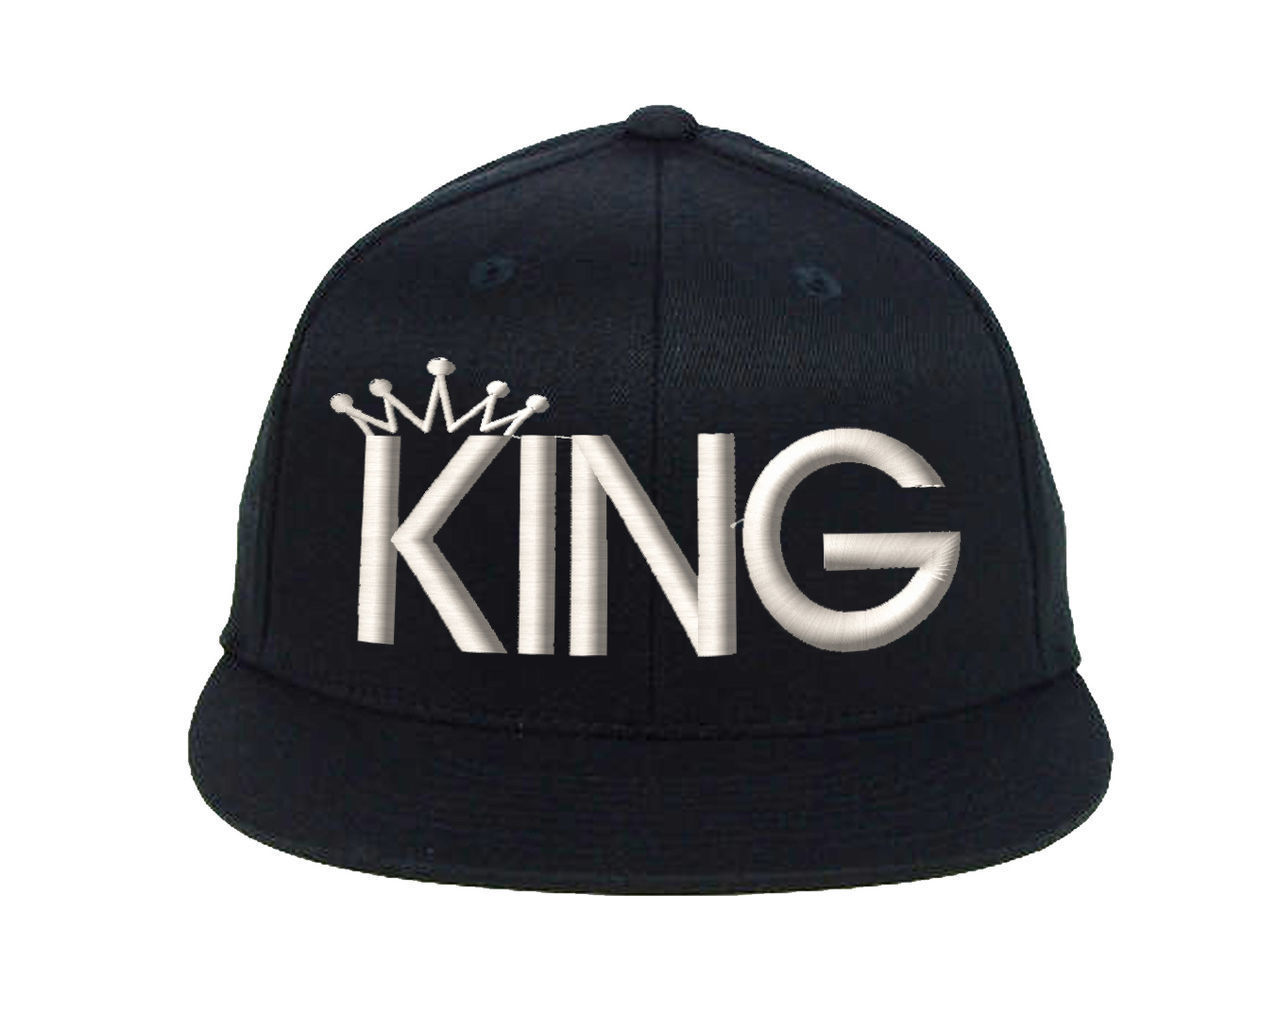 KING Snapback White Thread, Fine Finished Embroidery Cap